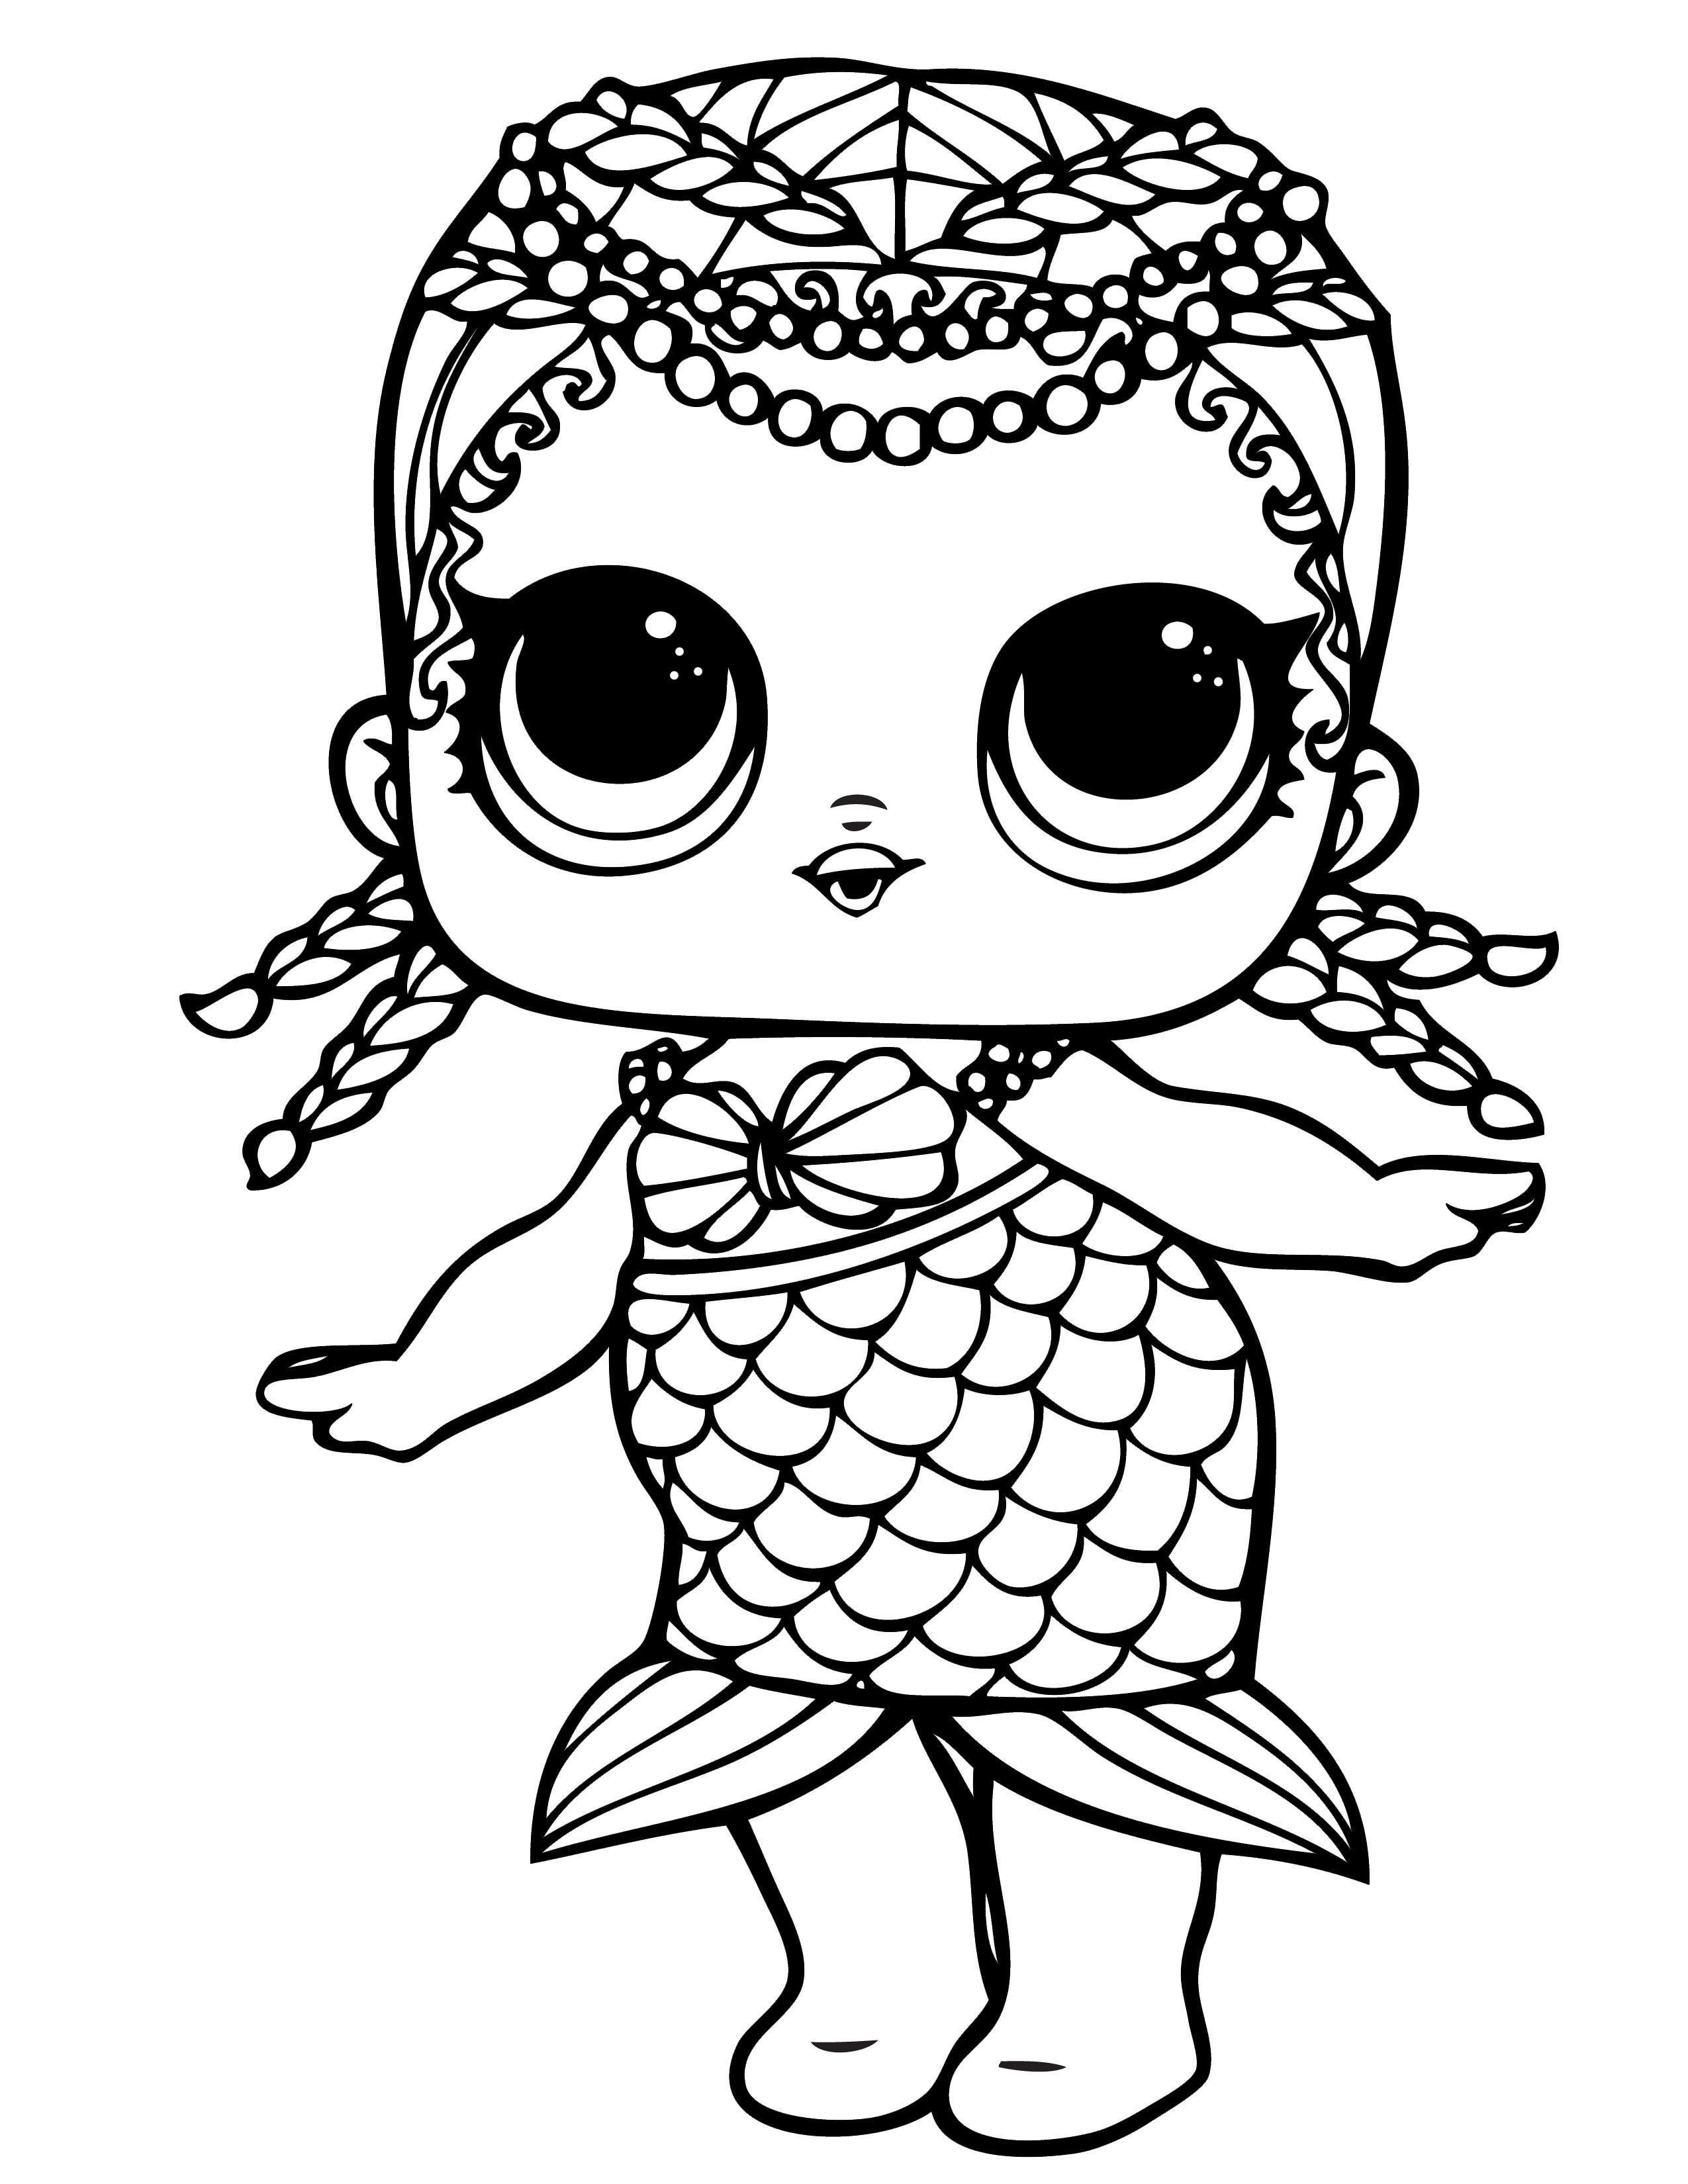 LOL Dolls Coloring Pages - Best Coloring Pages For Kids ...